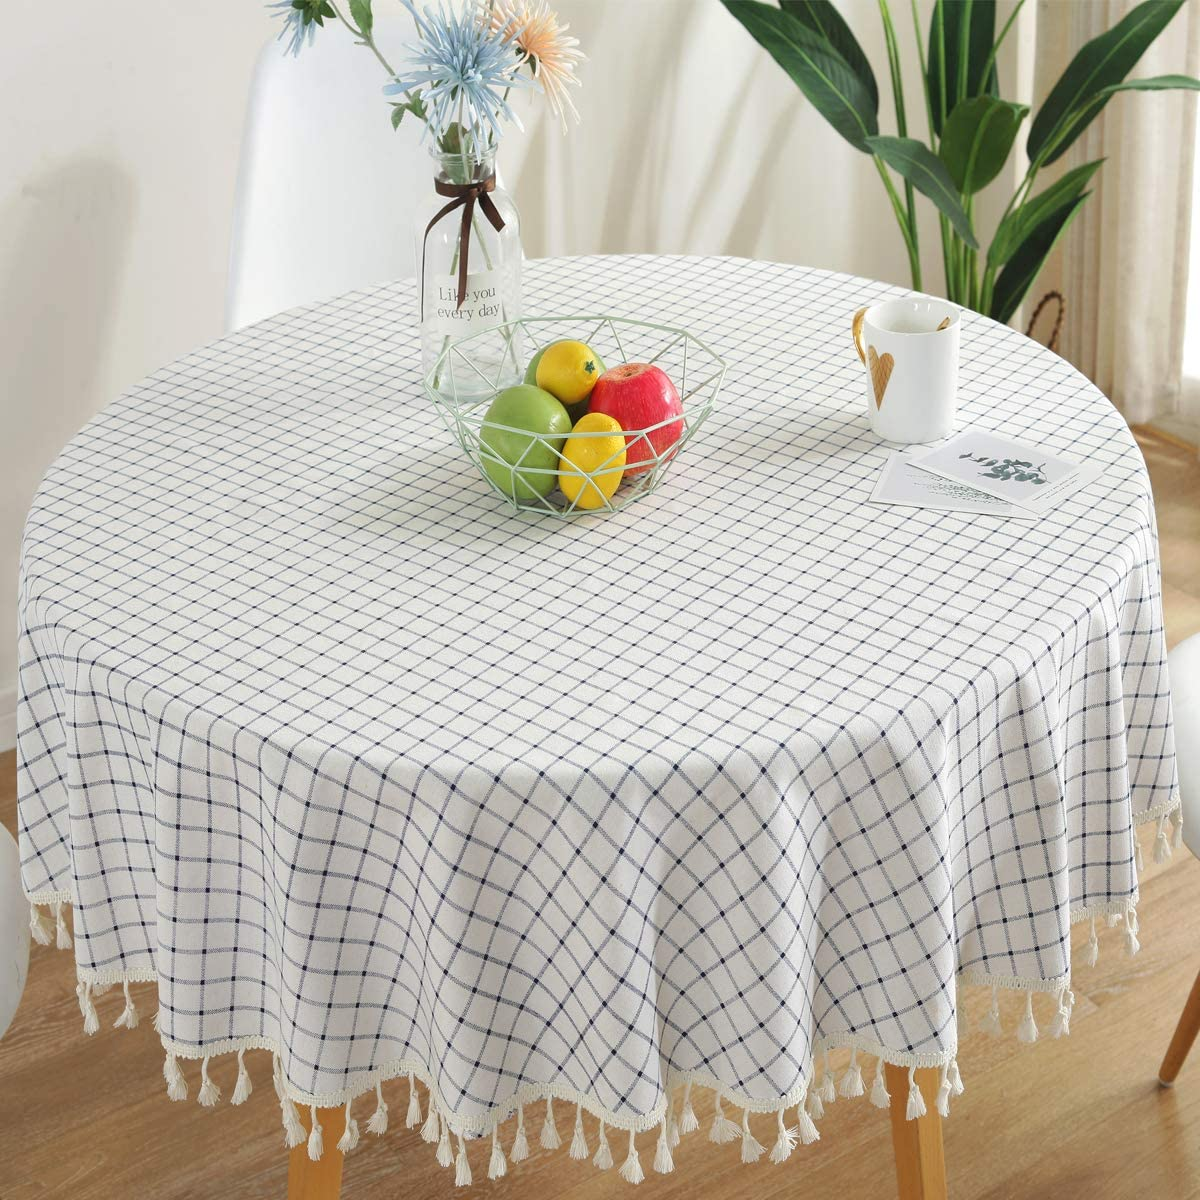 Bringsine Checkered Tassel Tablecloth Cotton Linen Dust-Proof Table Cover for Kitchen Dinning Tabletop Decoration (Round, 60 Inch, White/Blue)